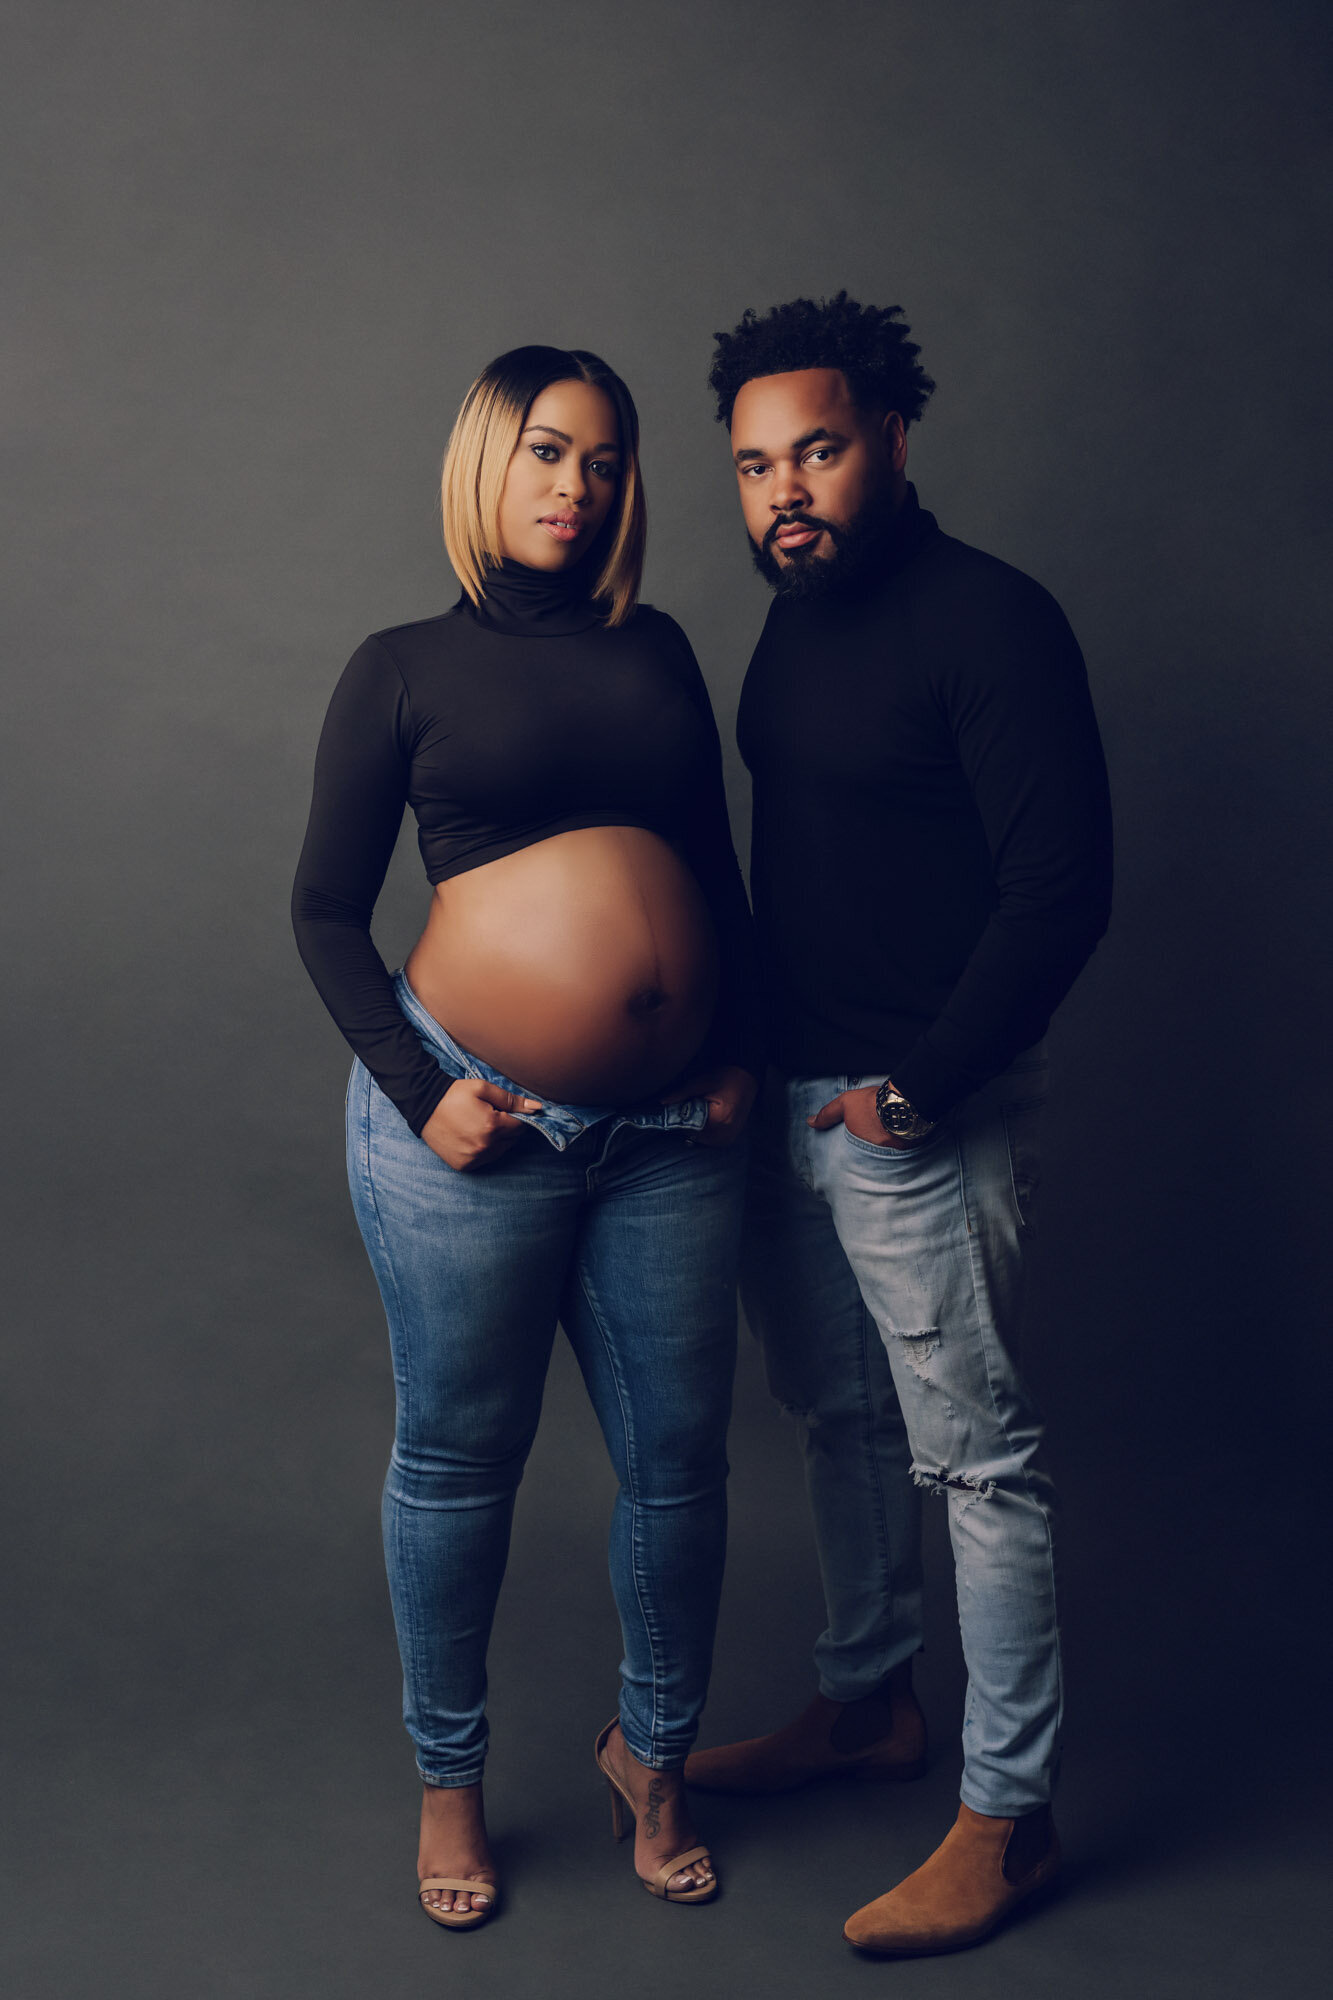 Maternity portrait of a man and woman in jeans and turtlenecks. Luxury portraits.